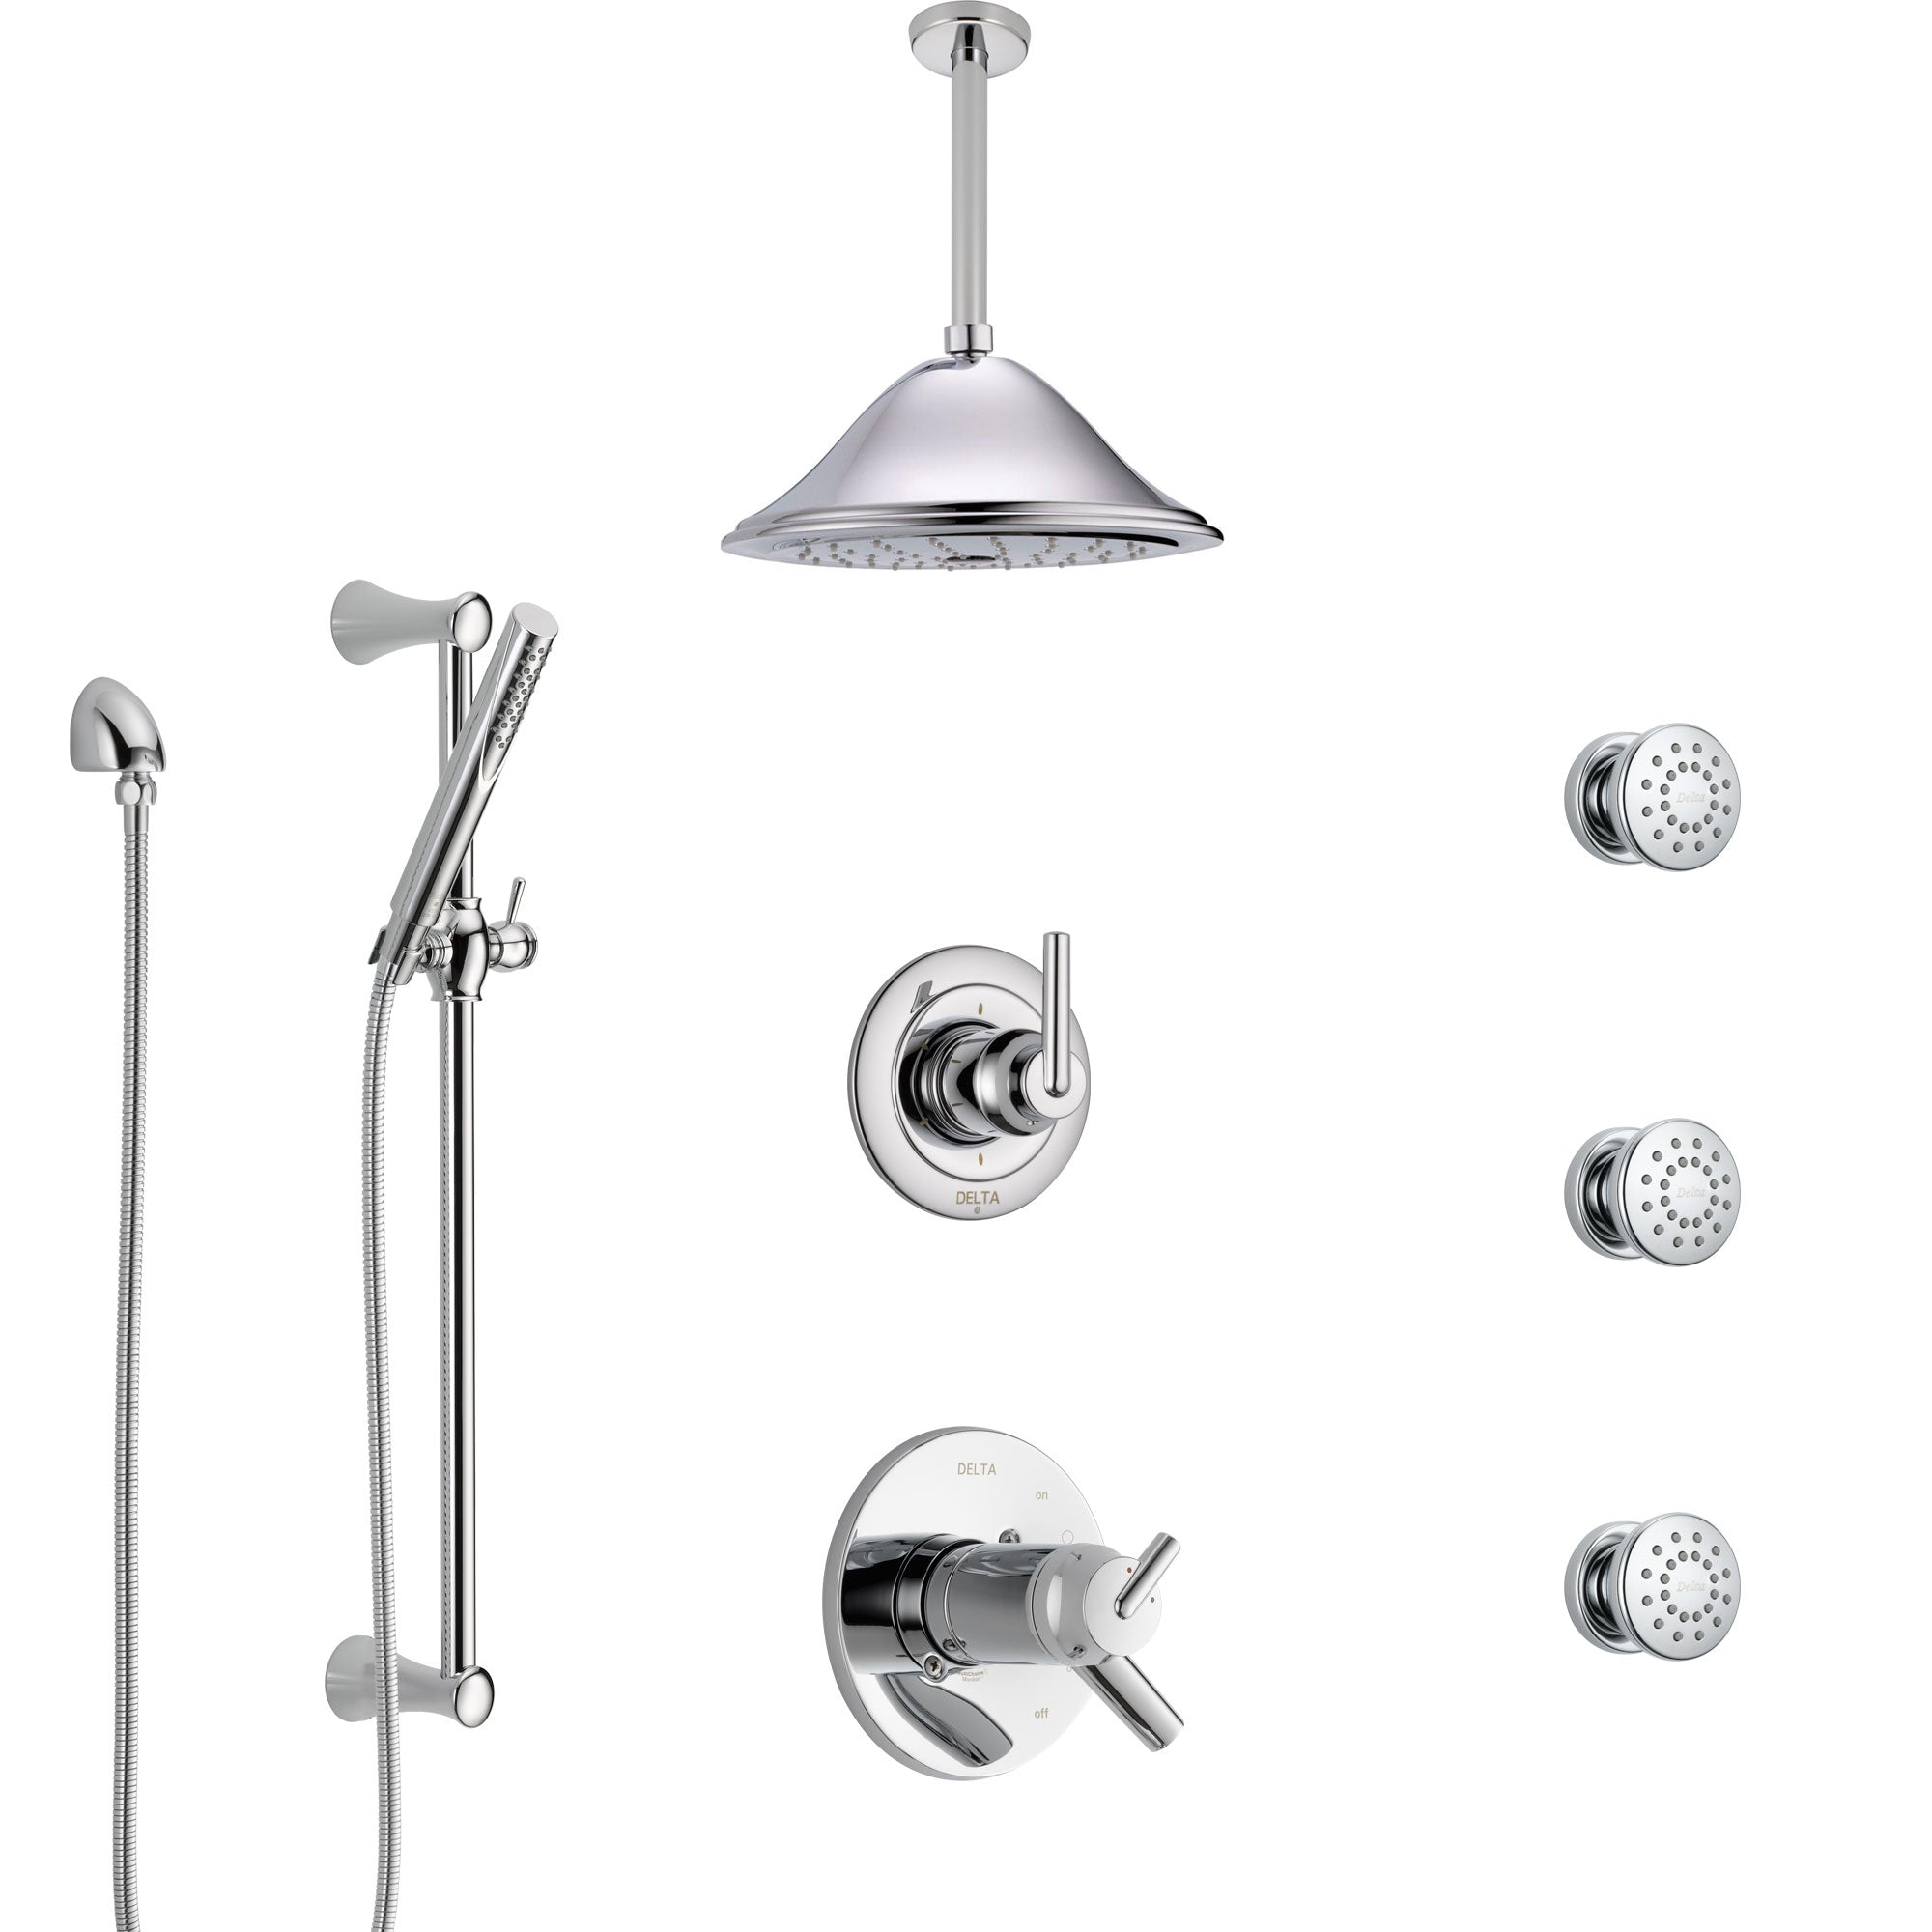 Delta Trinsic Chrome Shower System with Dual Thermostatic Control, Diverter, Ceiling Mount Showerhead, 3 Body Sprays, and Hand Shower SS17T5916